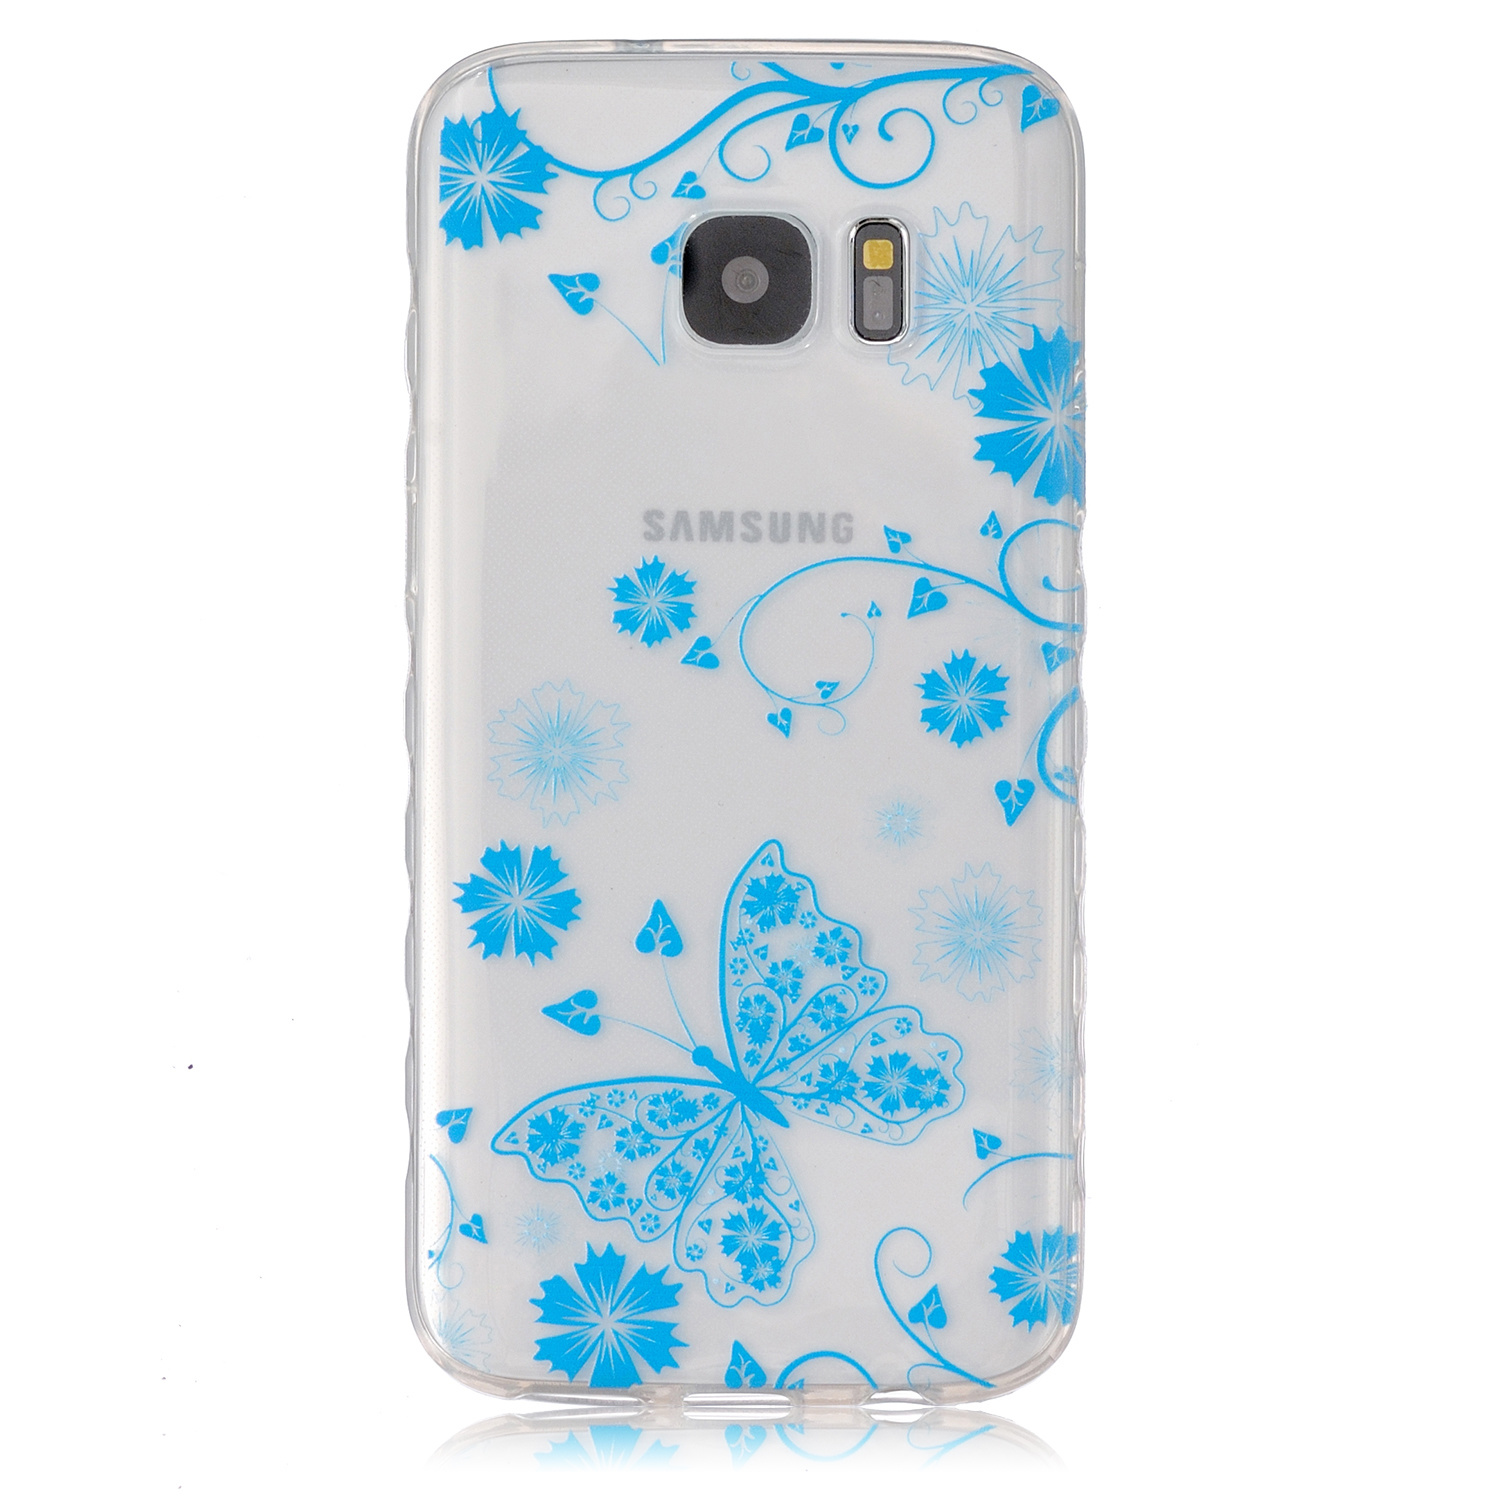 Http List Item Artmine Phone Accessory G4 Case Samsung Galaxy A8 Star Free Anker Powerport Black 568940692 06g 0 W St G